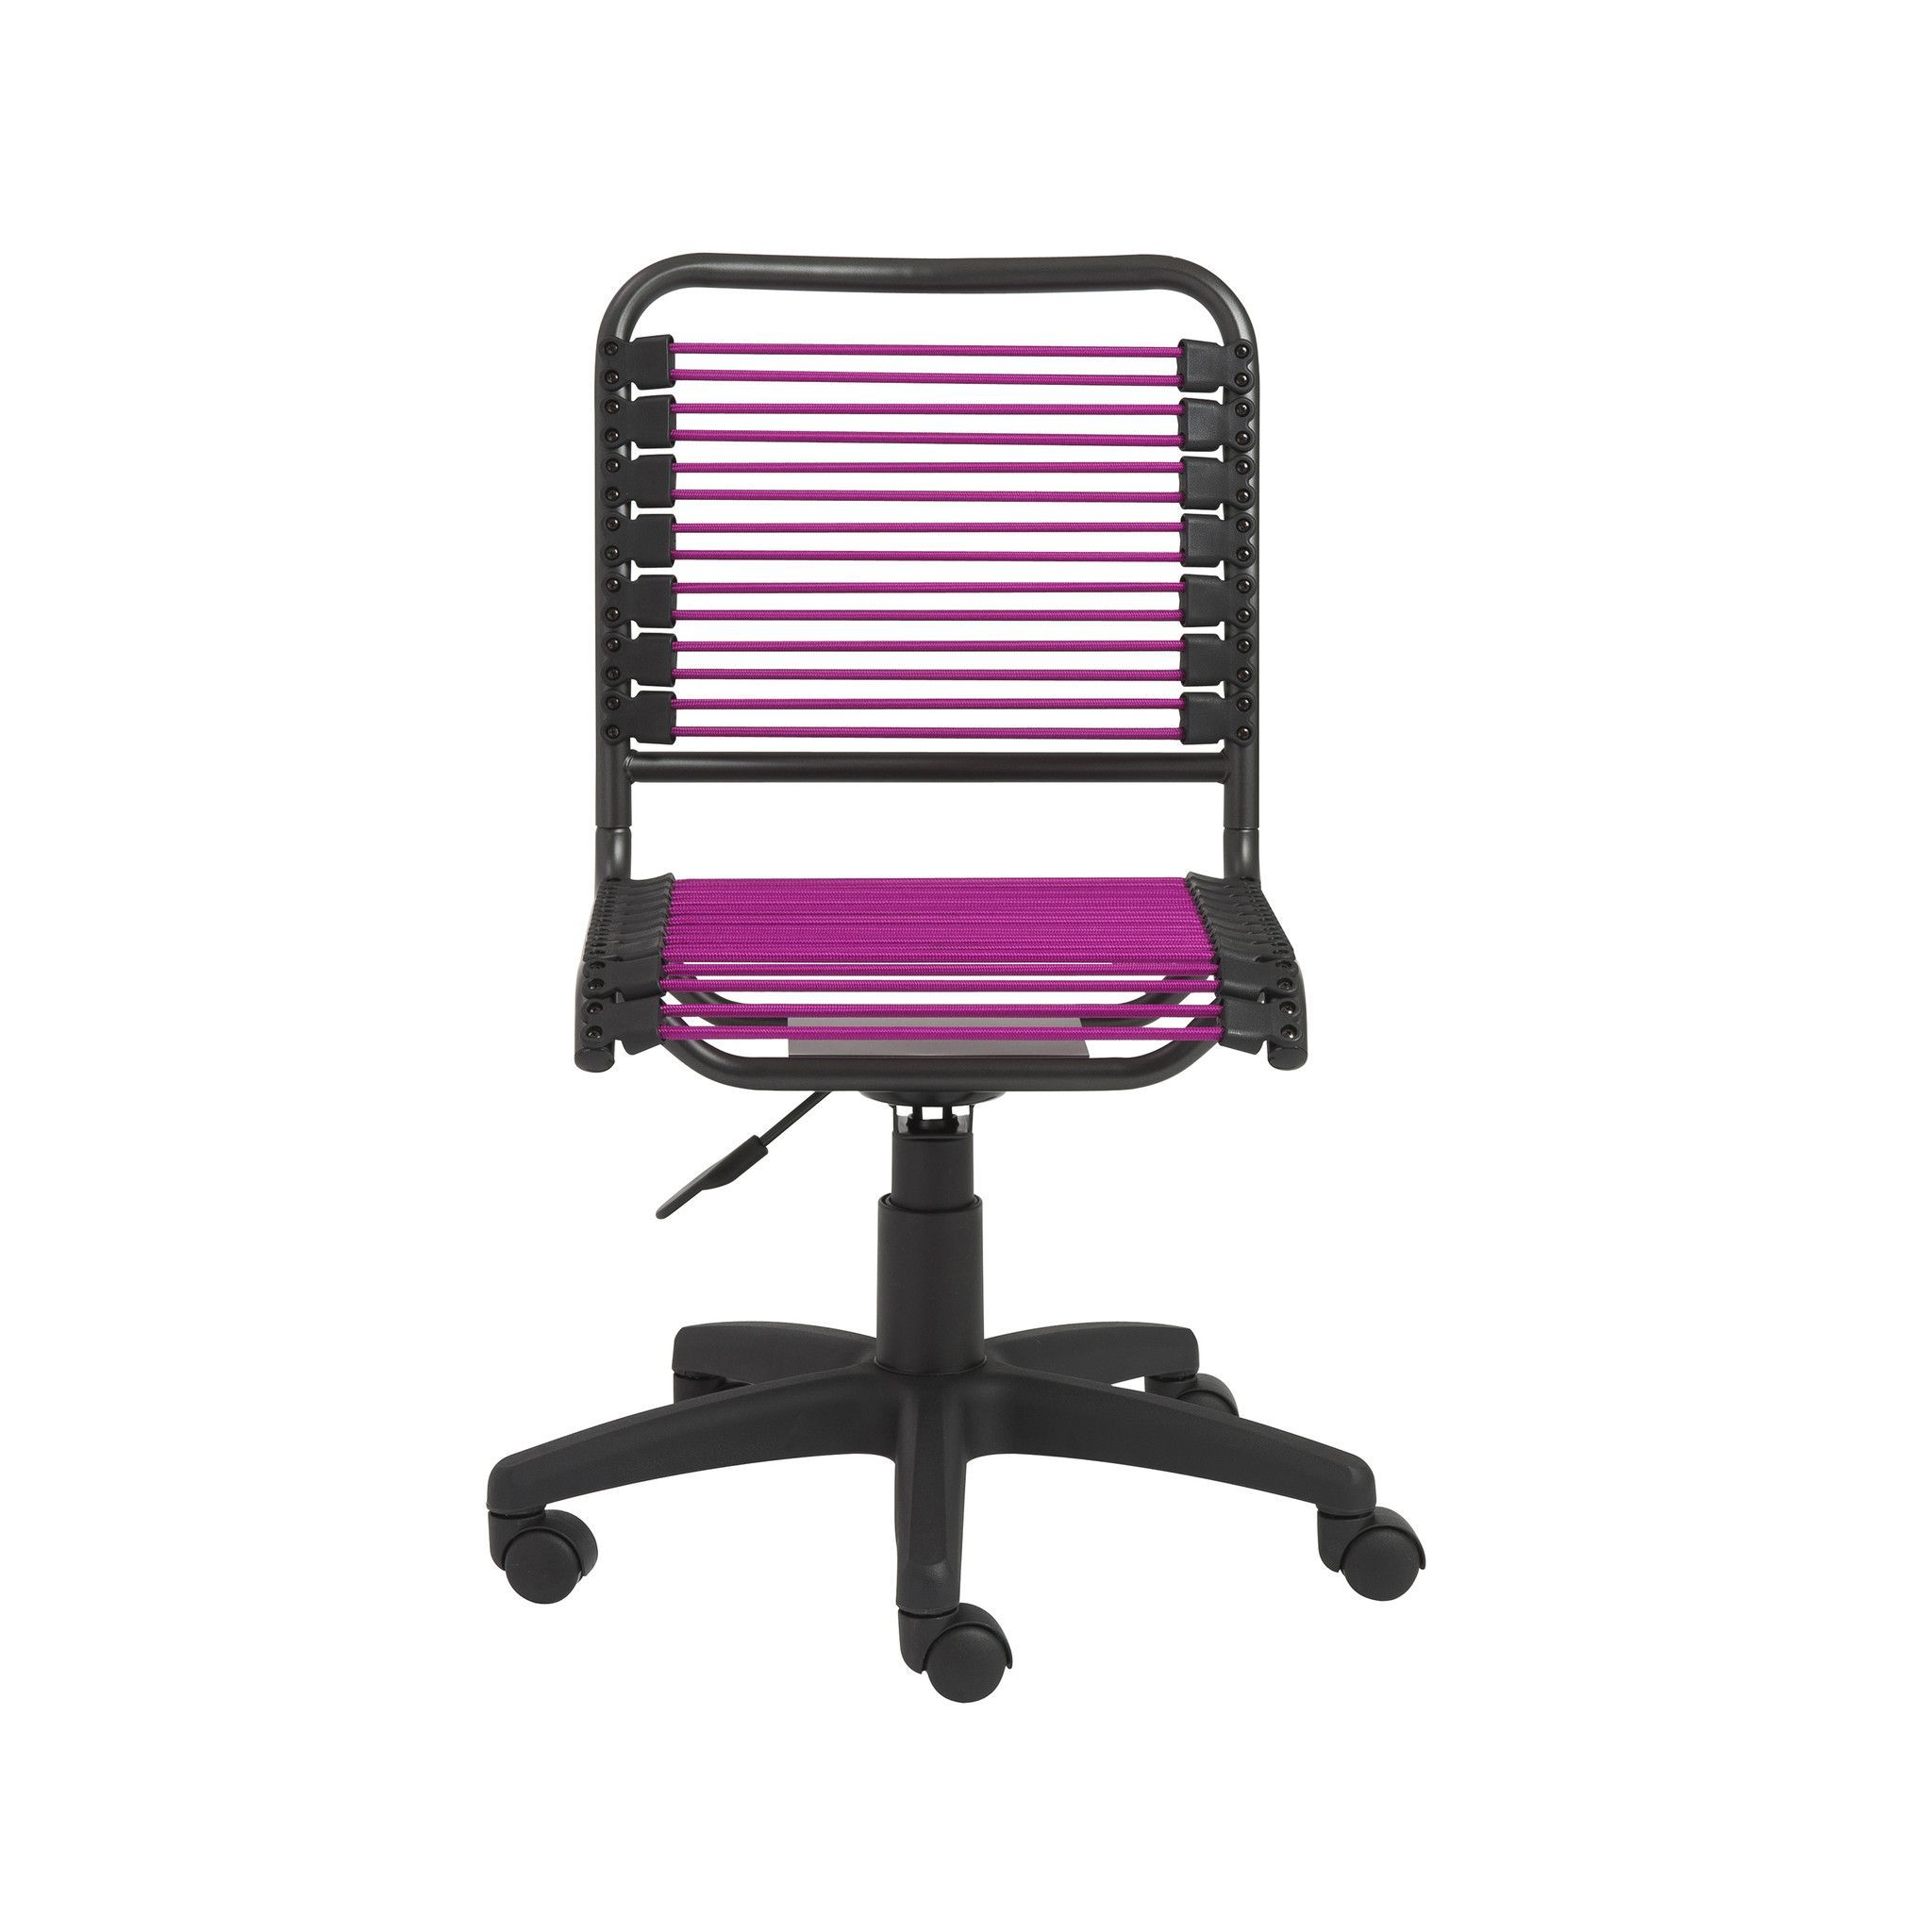 Bungie Low Back Office Chair in Pink with Graphite Black Frame and Black Base